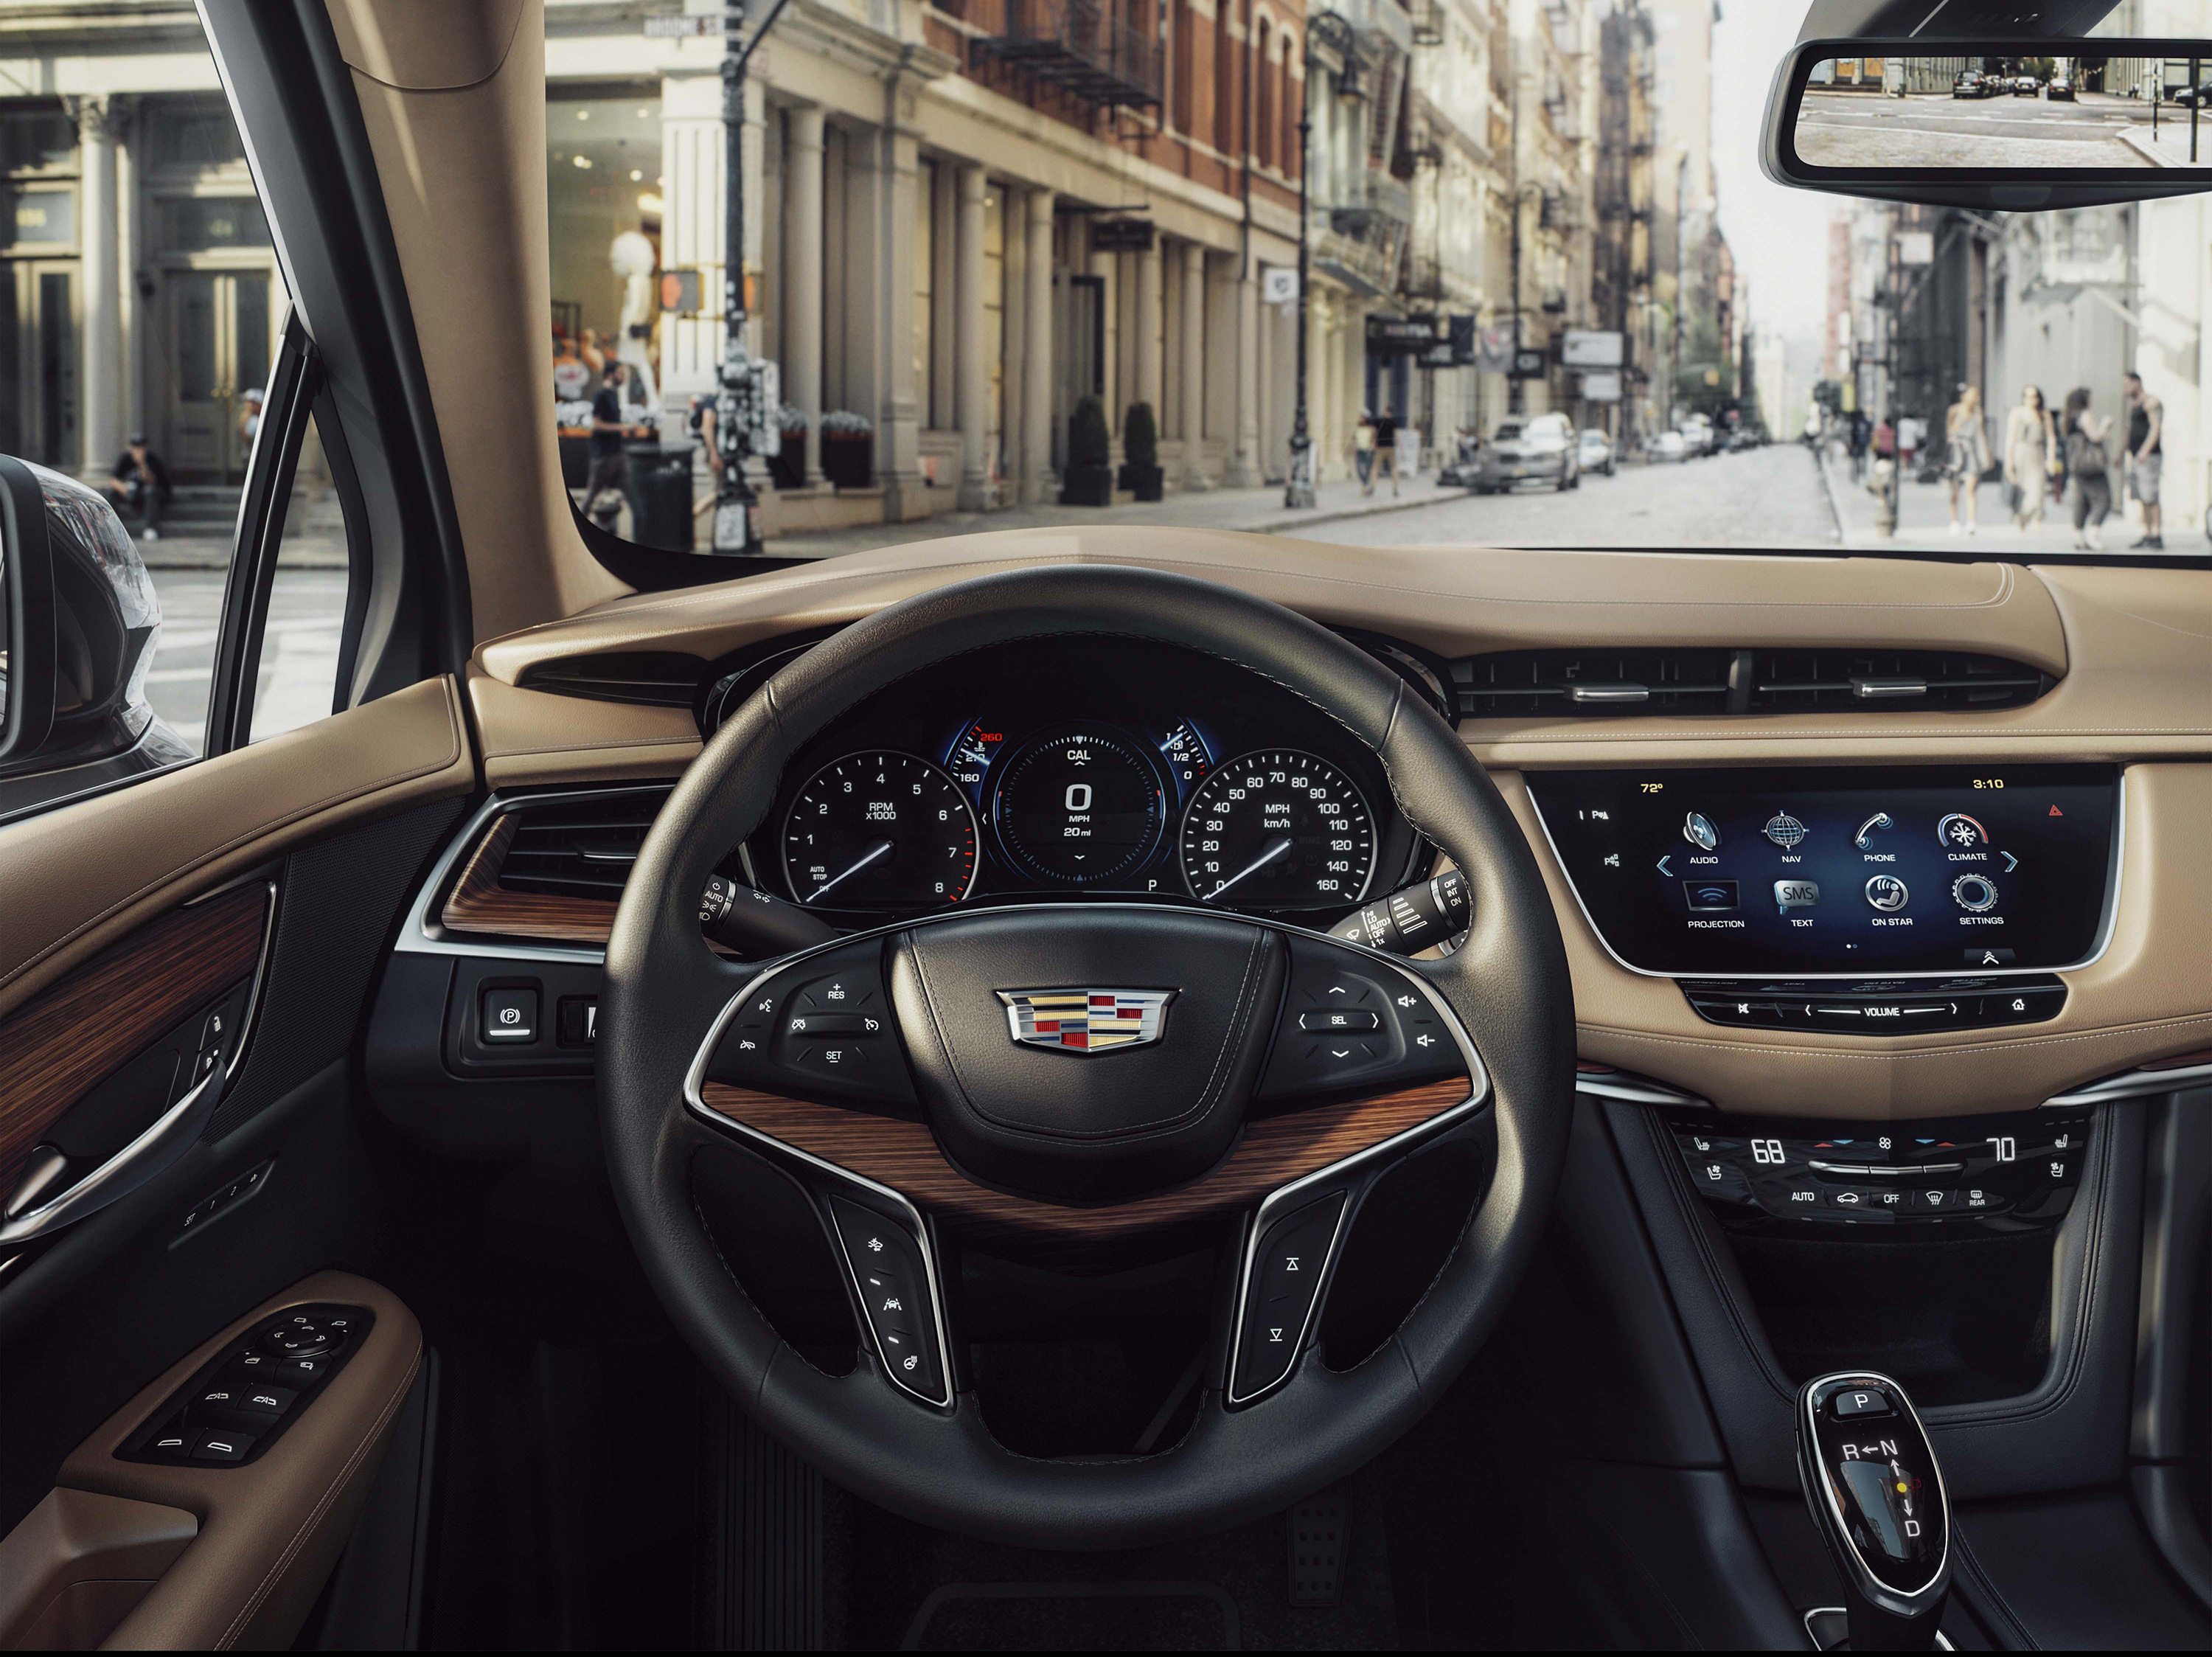 2017 Cadillac XT5 Named to 2016 WardsAuto 10 Best Interiors List